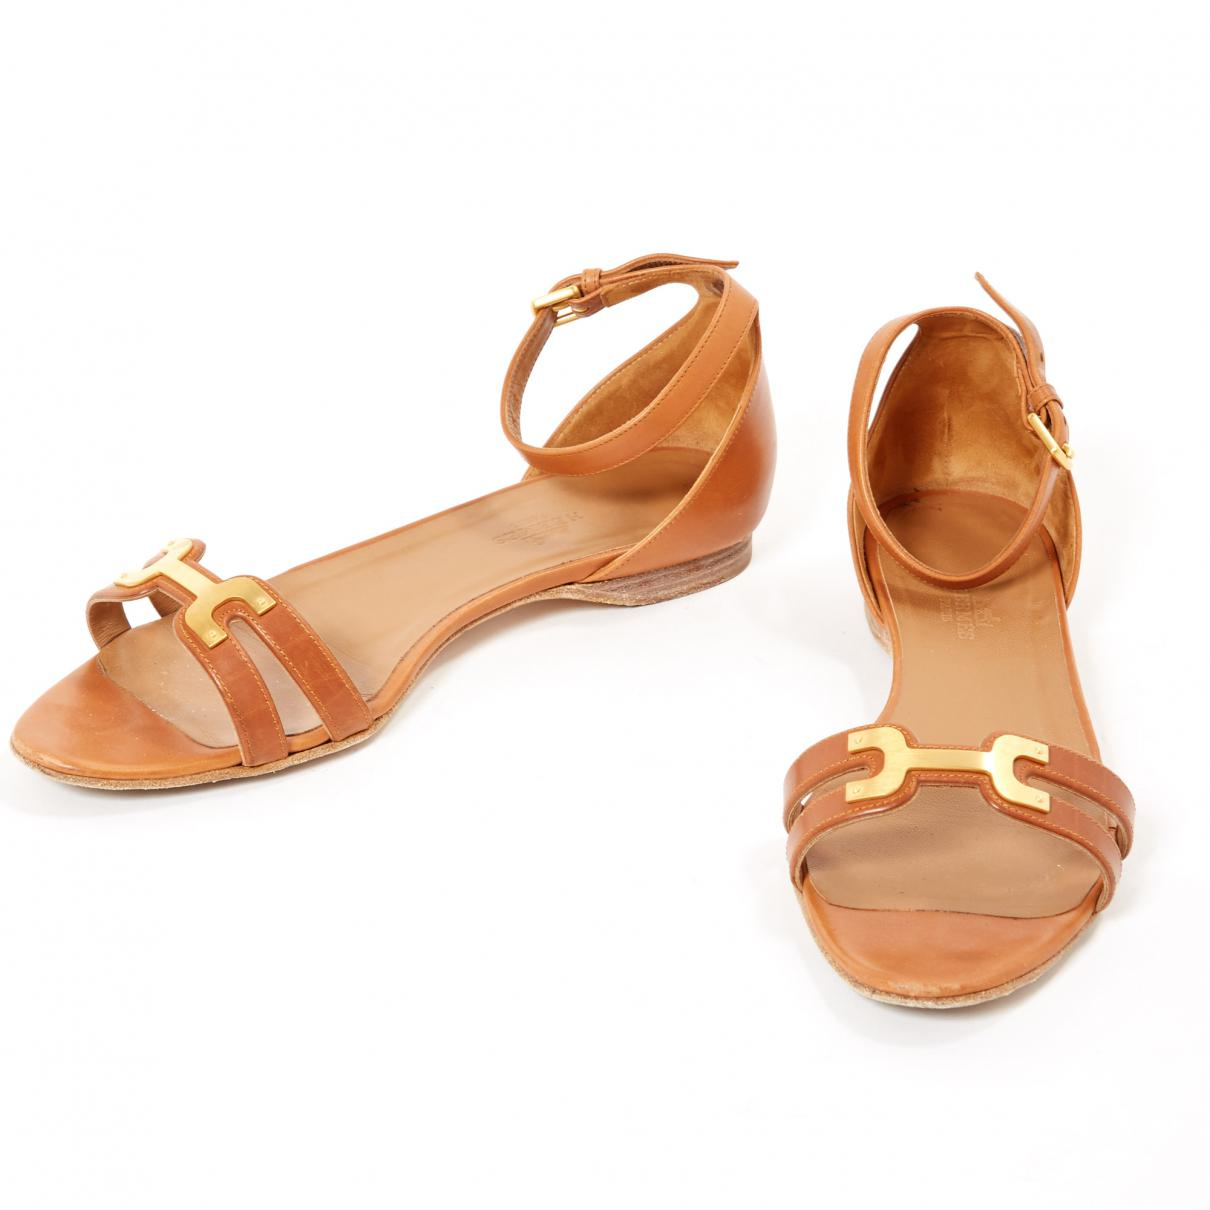 b570e3d56b09 Lyst - Hermès Pre-owned Brown Leather Sandals in Brown